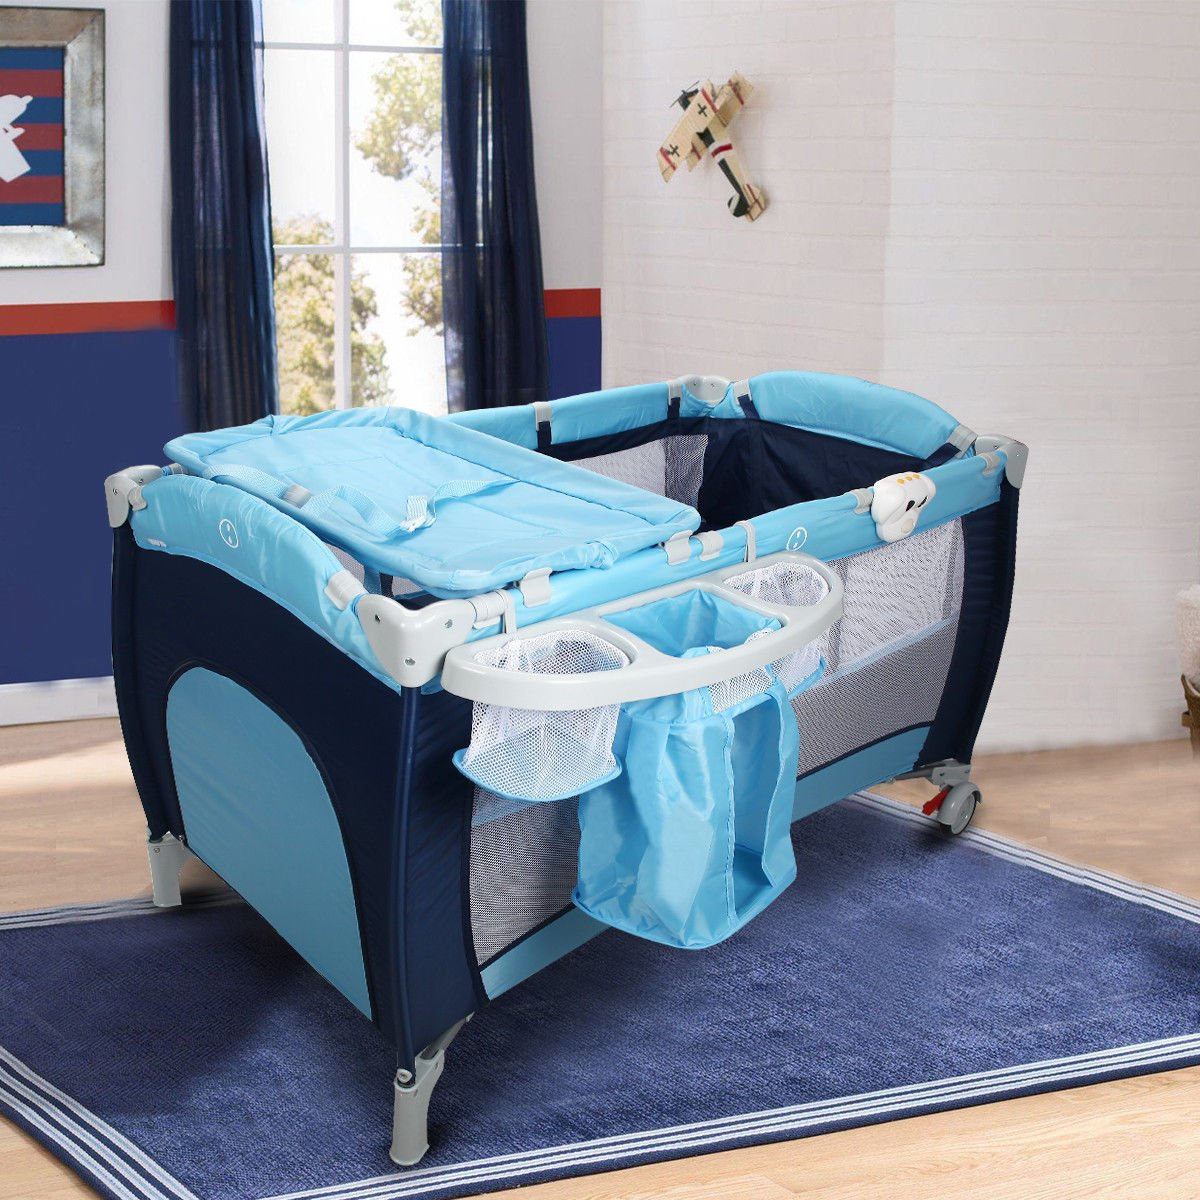 New Foldable Baby Crib Playpen Travel Infant Bassinet Bed Mosquito Net Music w Bag by COSTWAY